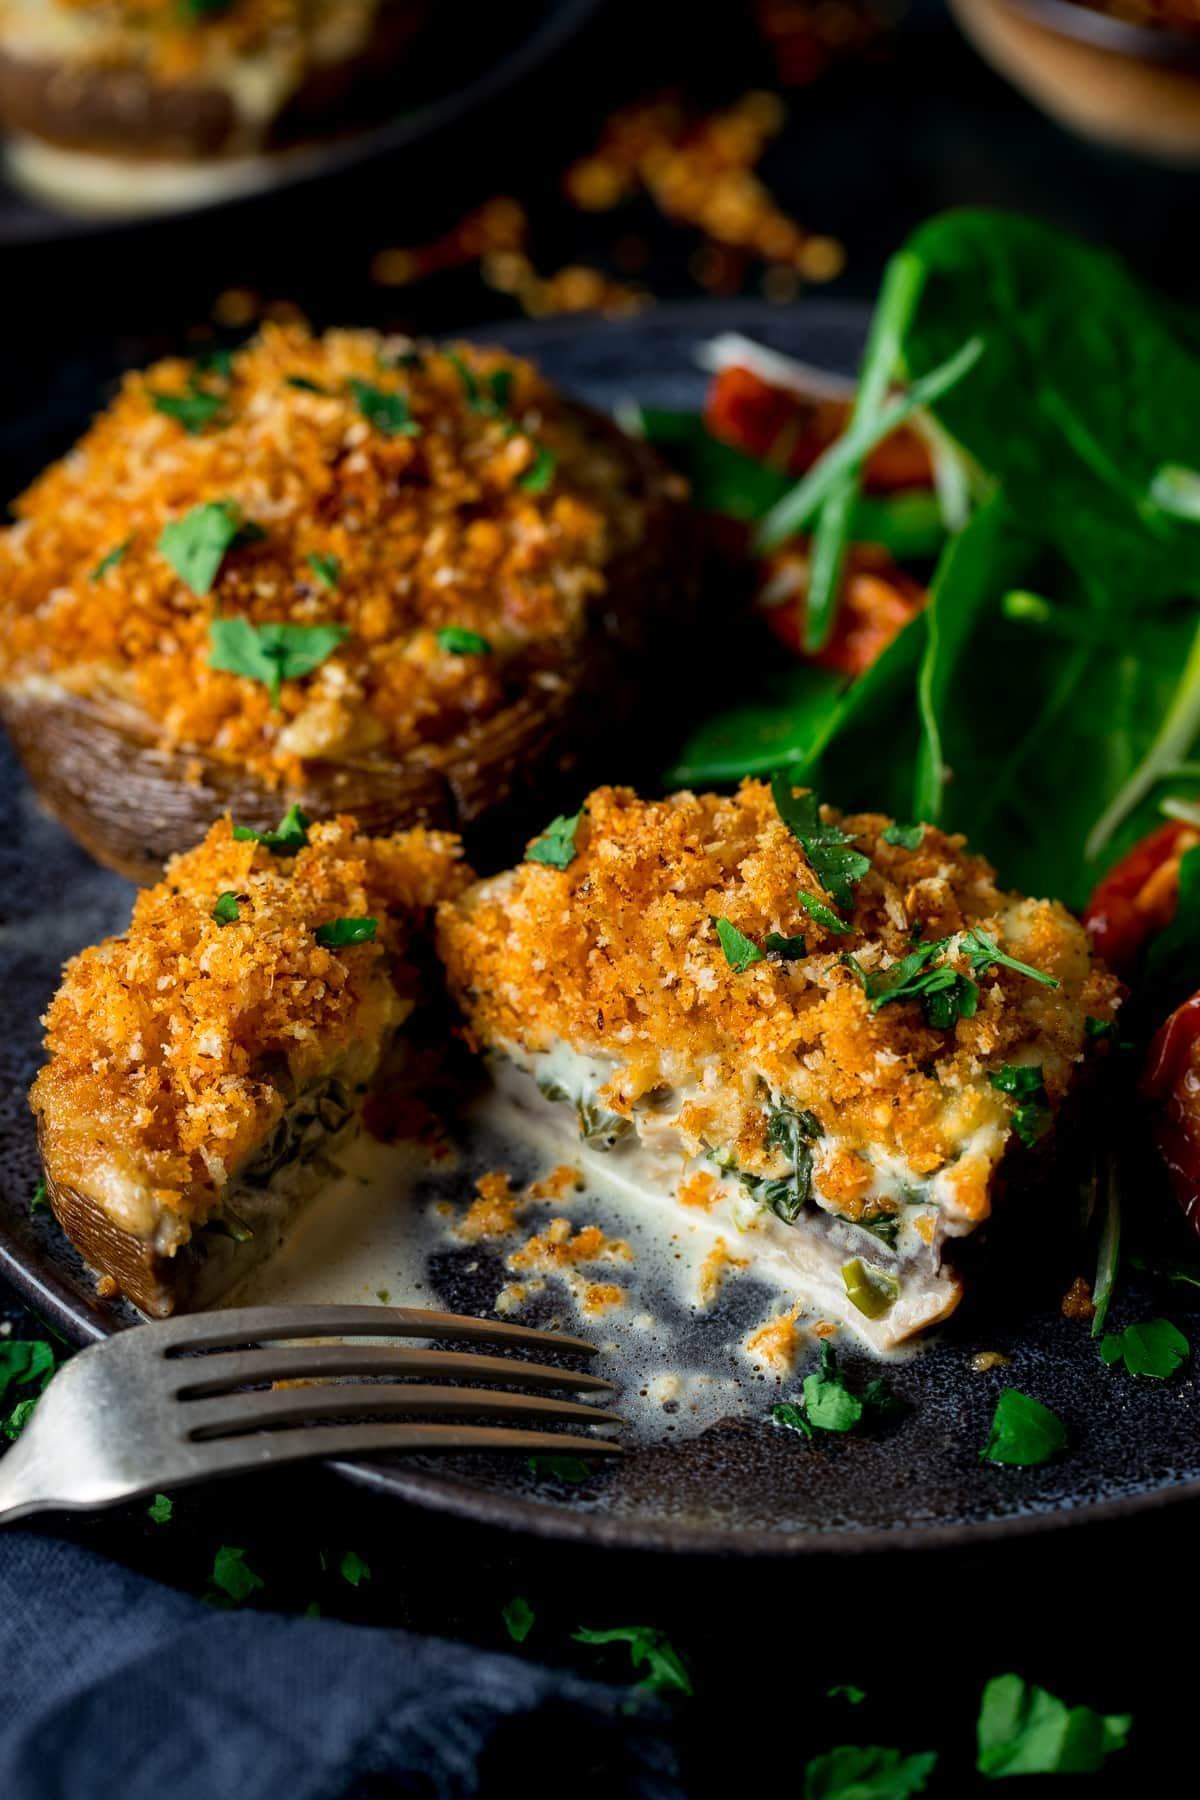 Stuffed mushrooms topped with crispy crumb topping sliced in half